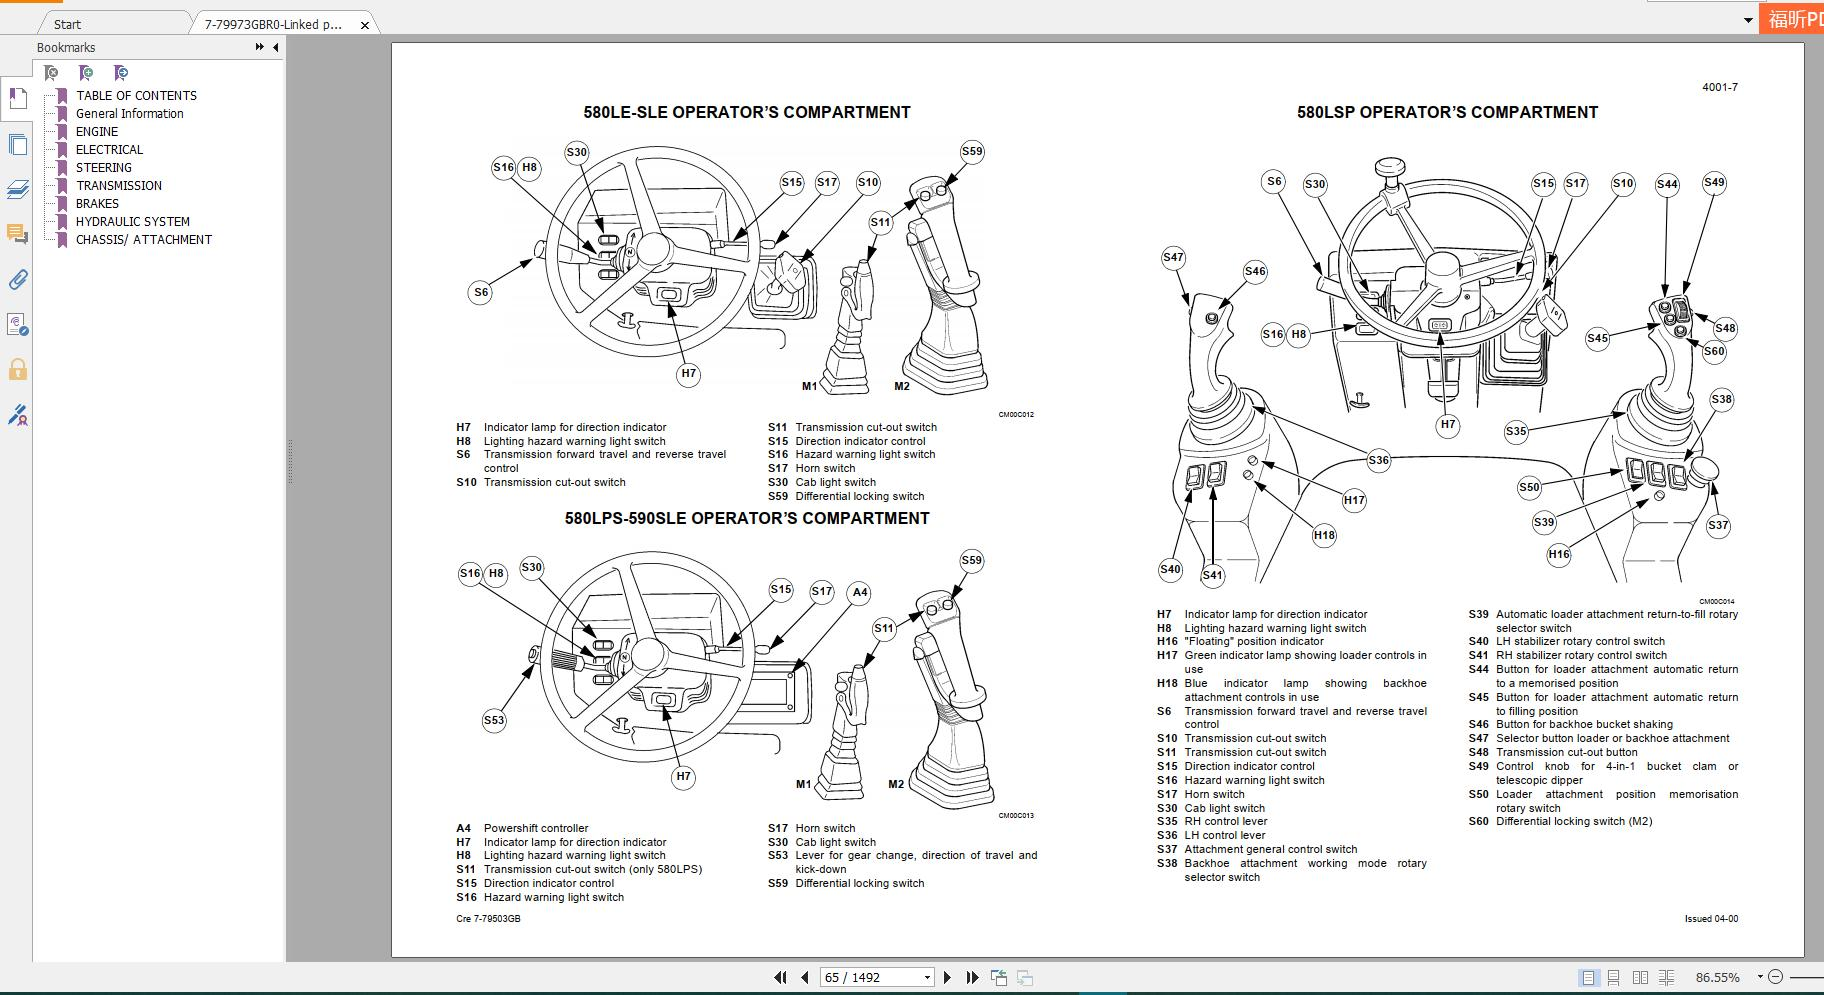 [ARMS] Case Backhoe Loader New Model Service Manual Full